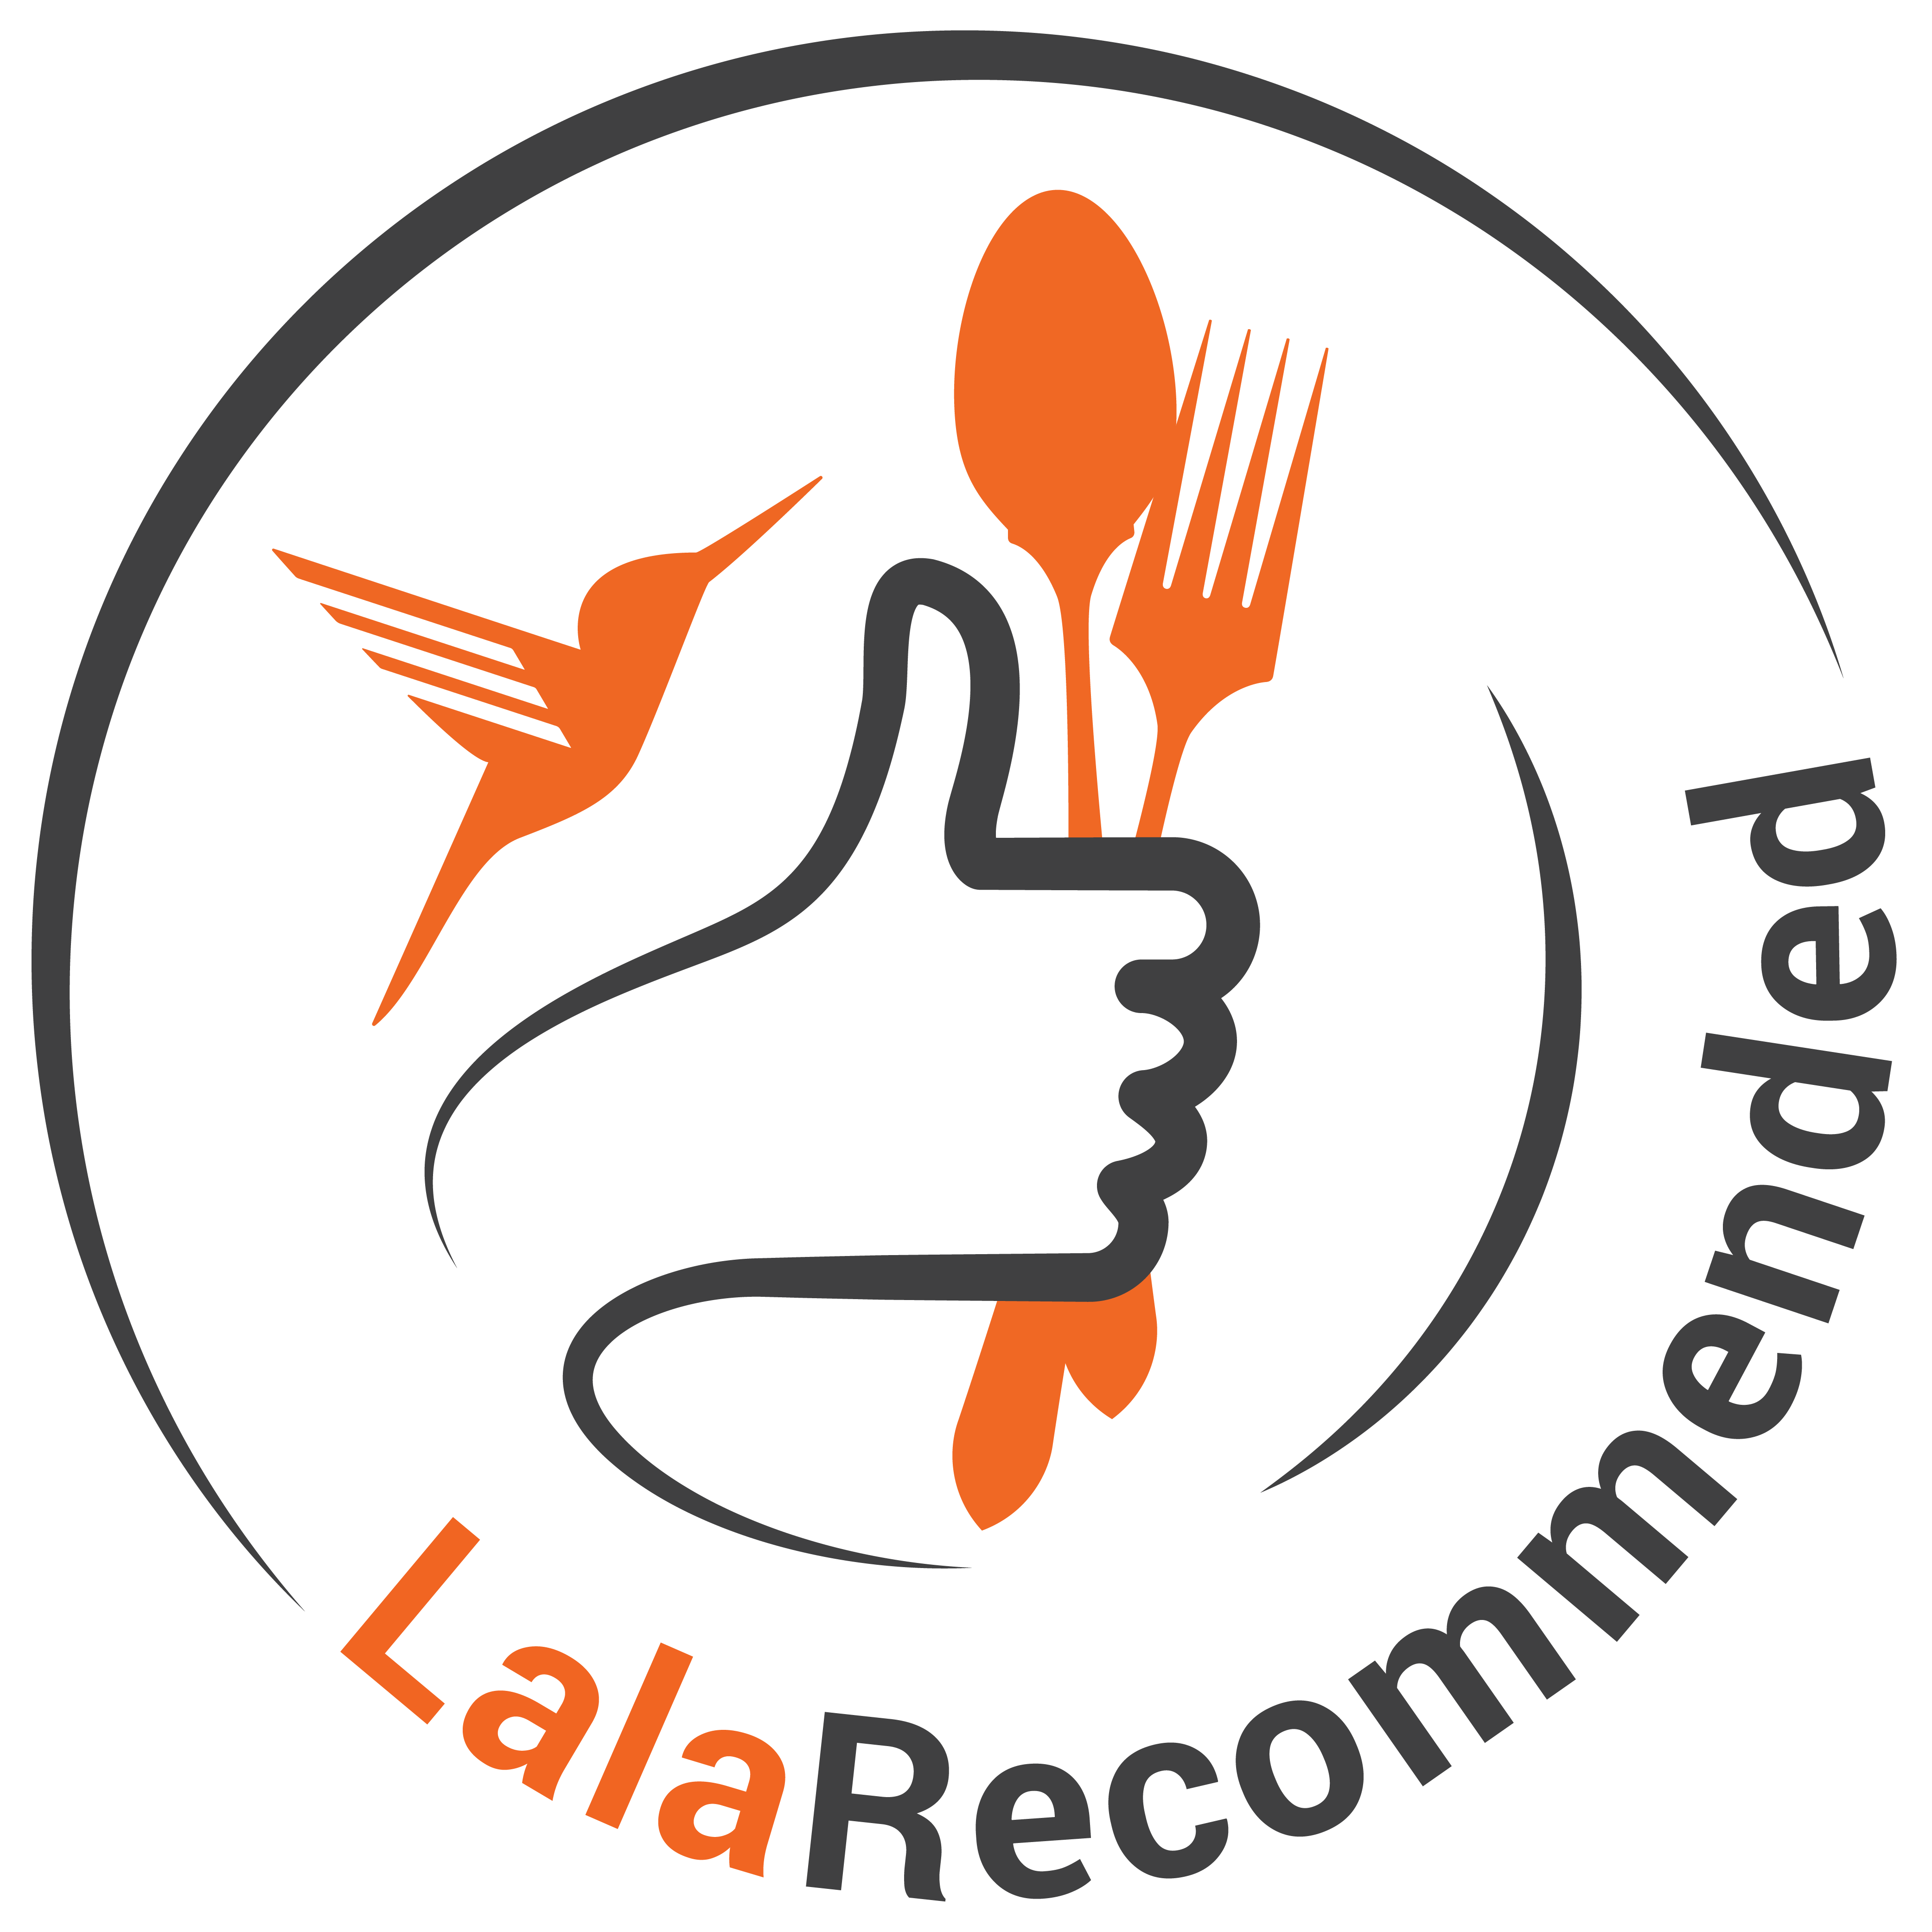 Lalamove launches Bangkok food delivery business